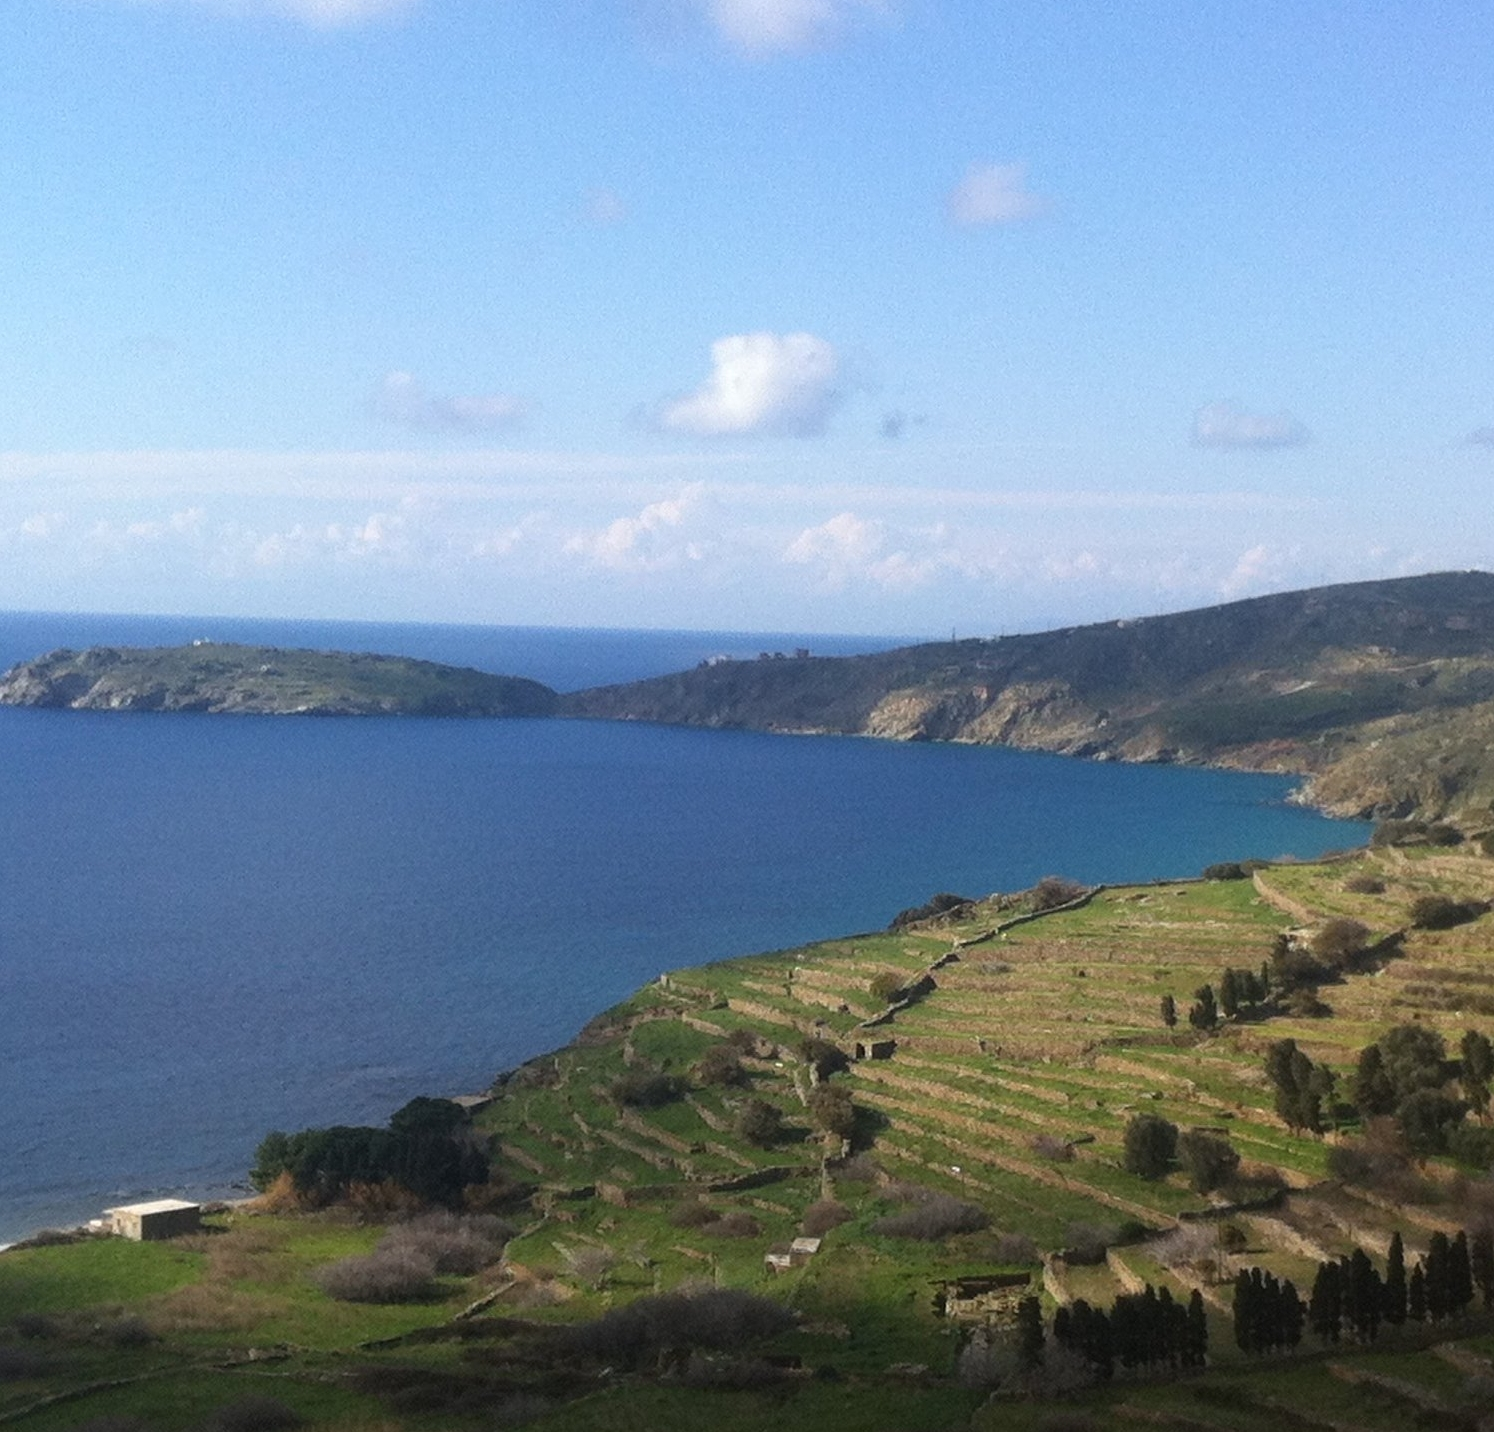 Andros Island. Photo lent to us by: Luea Ritter.